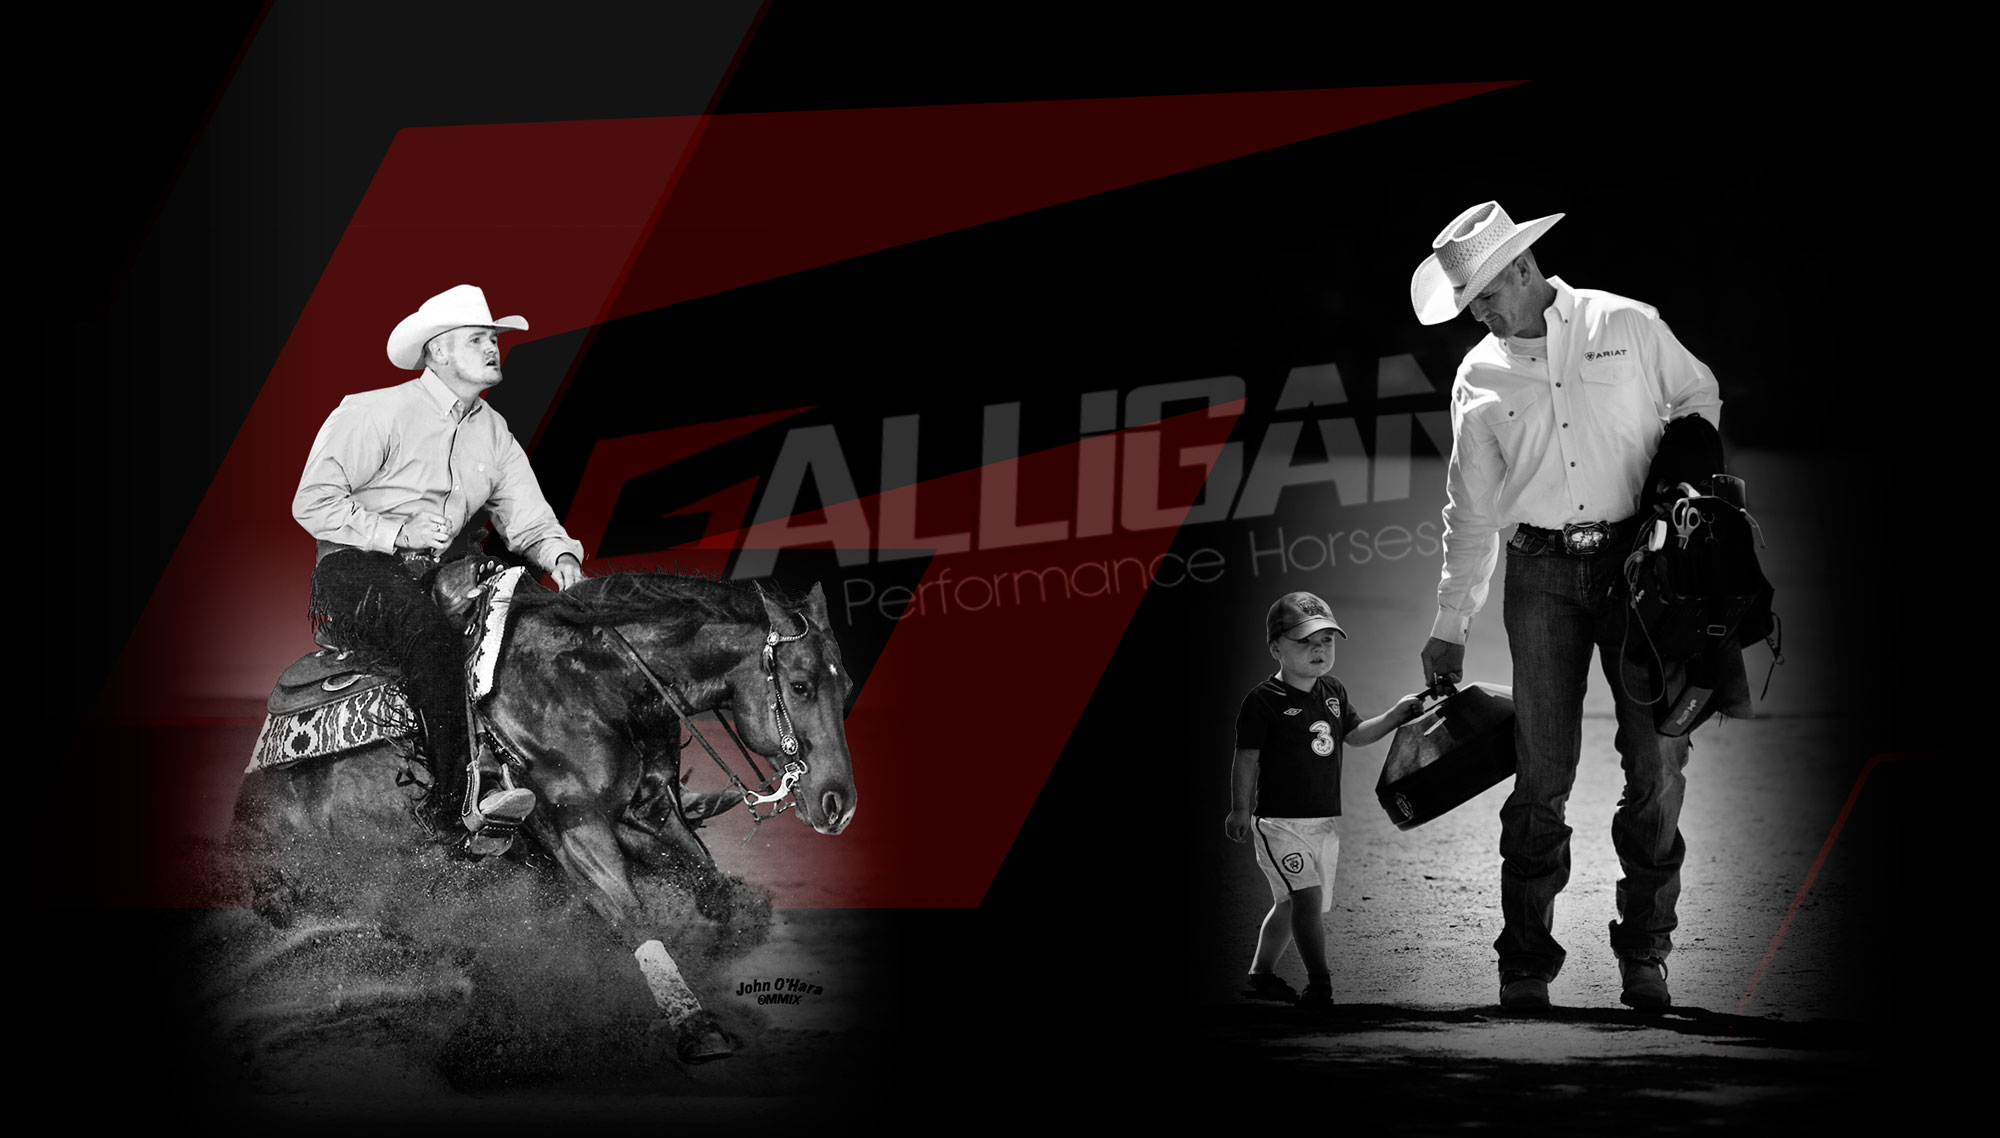 Galligan Performance Horses